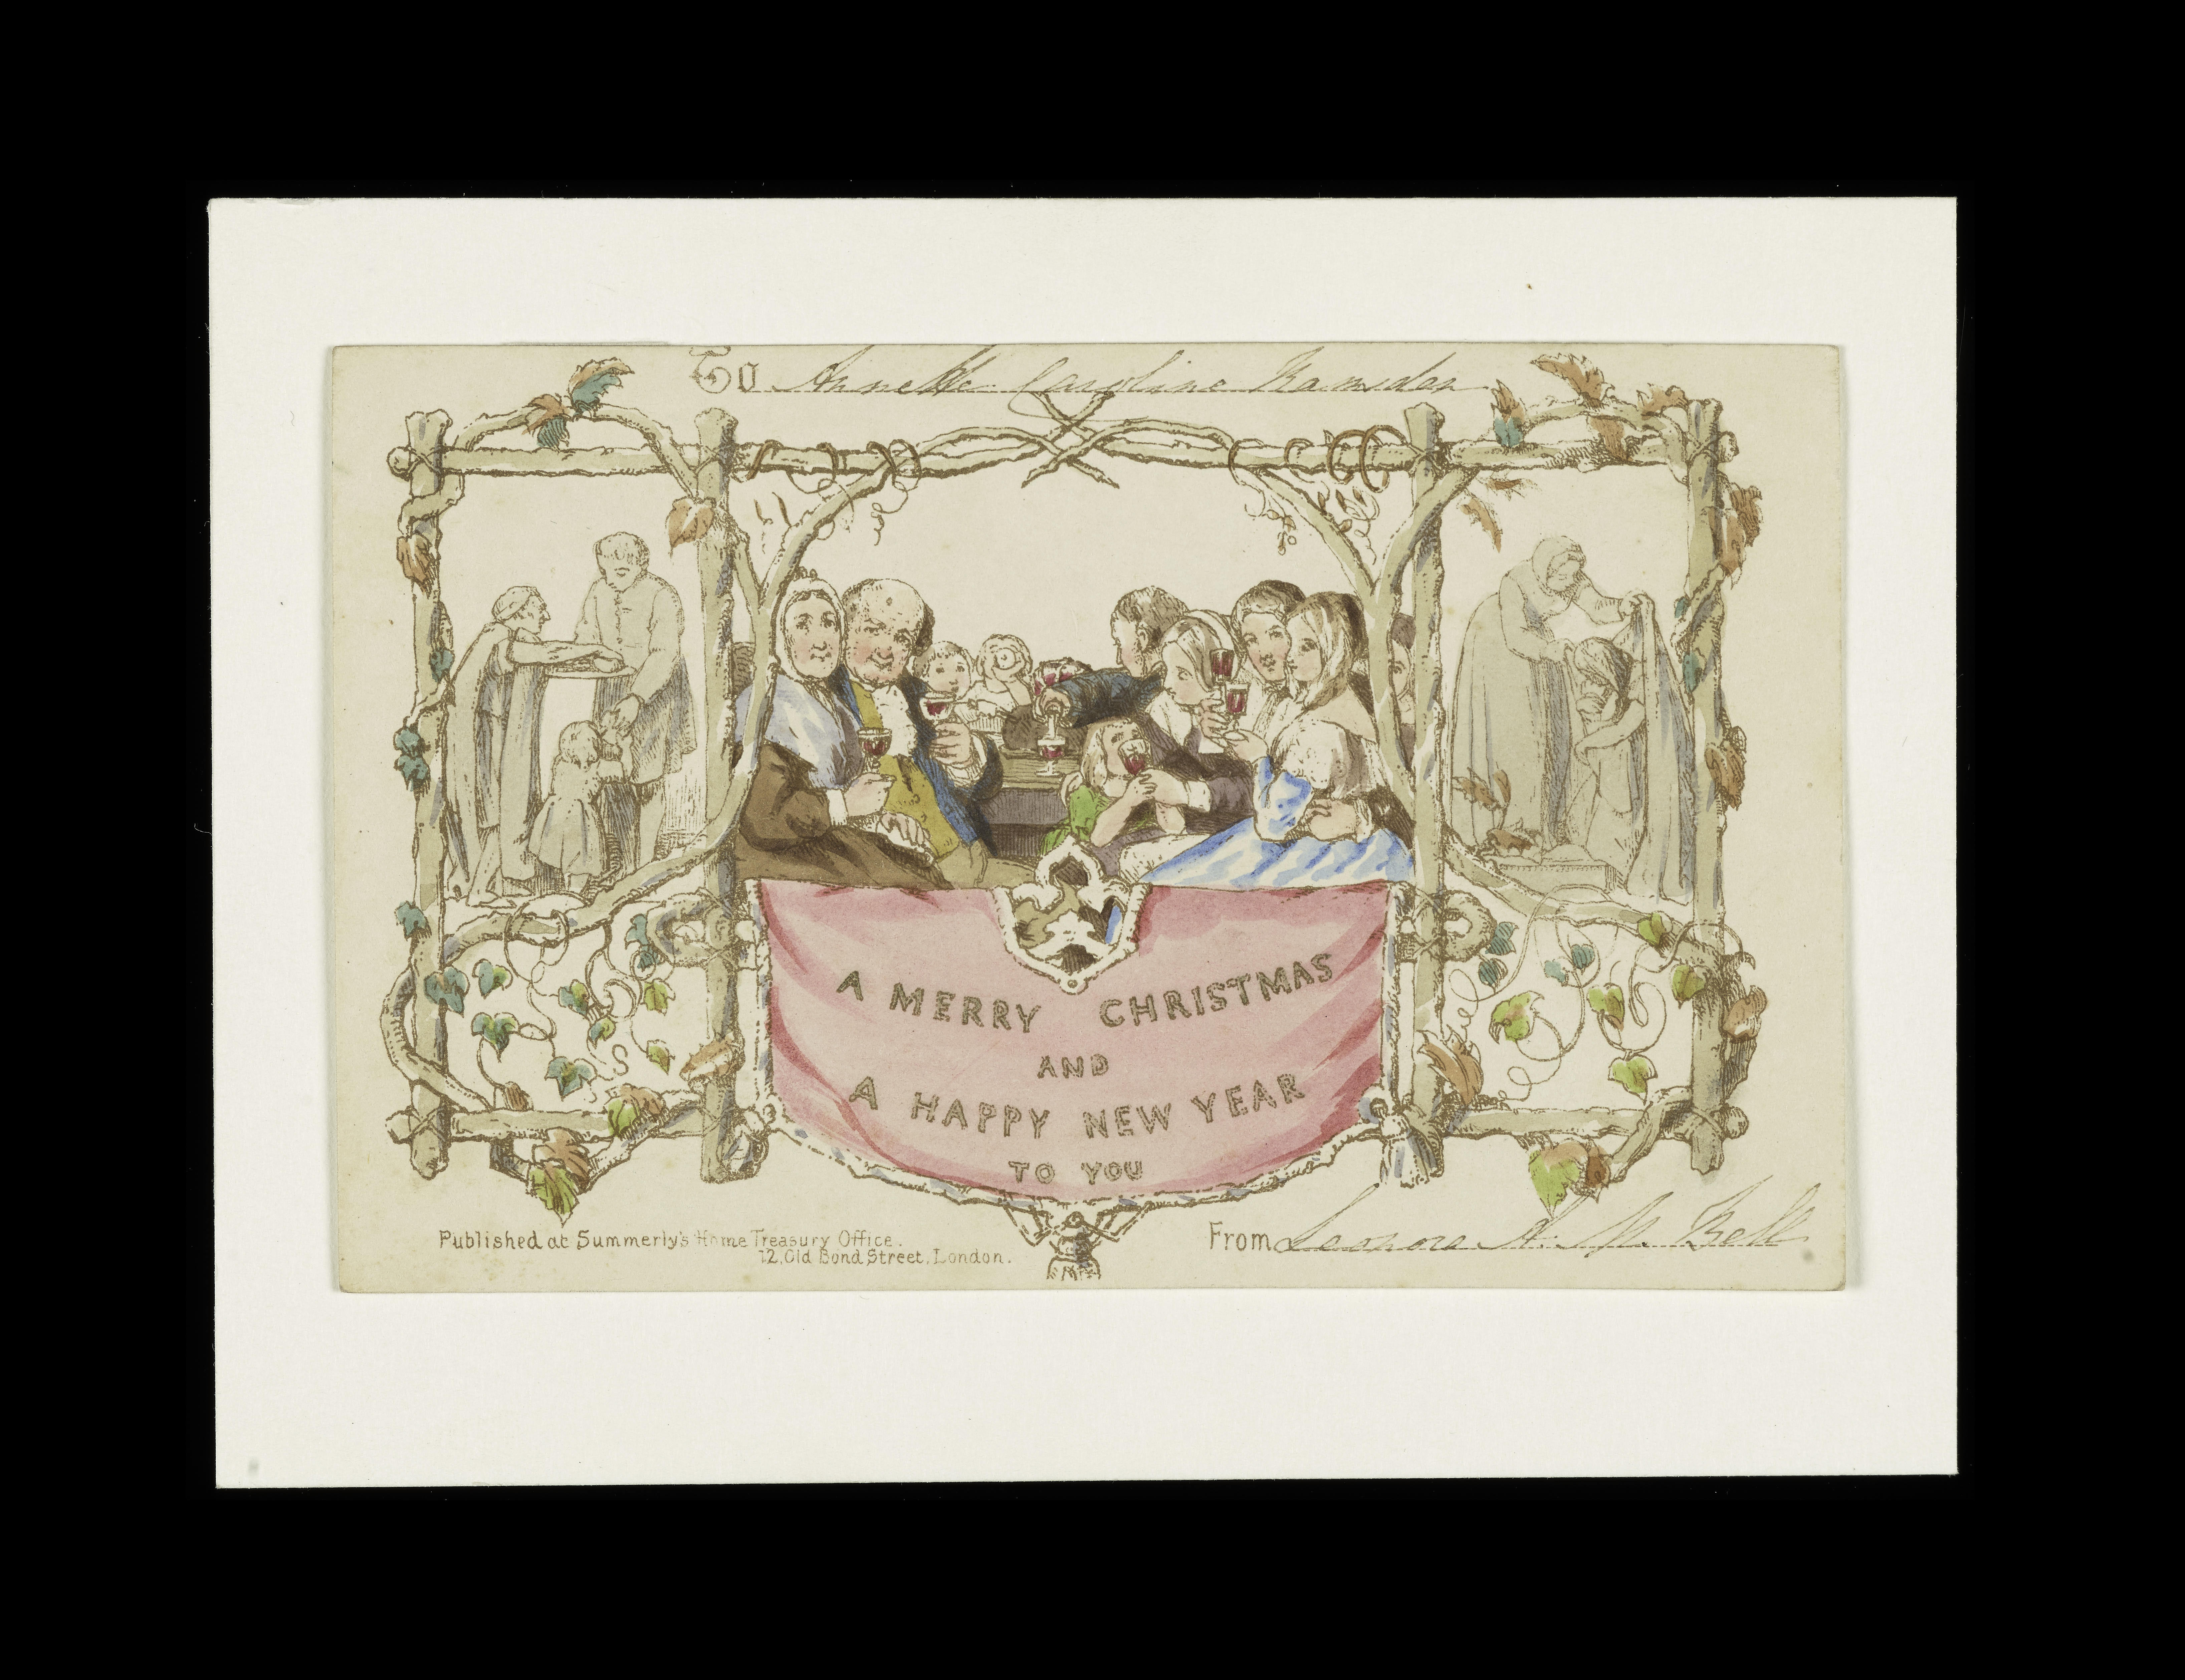 The first commercial Christmas card introduced by Sir Henry Cole in 1843.